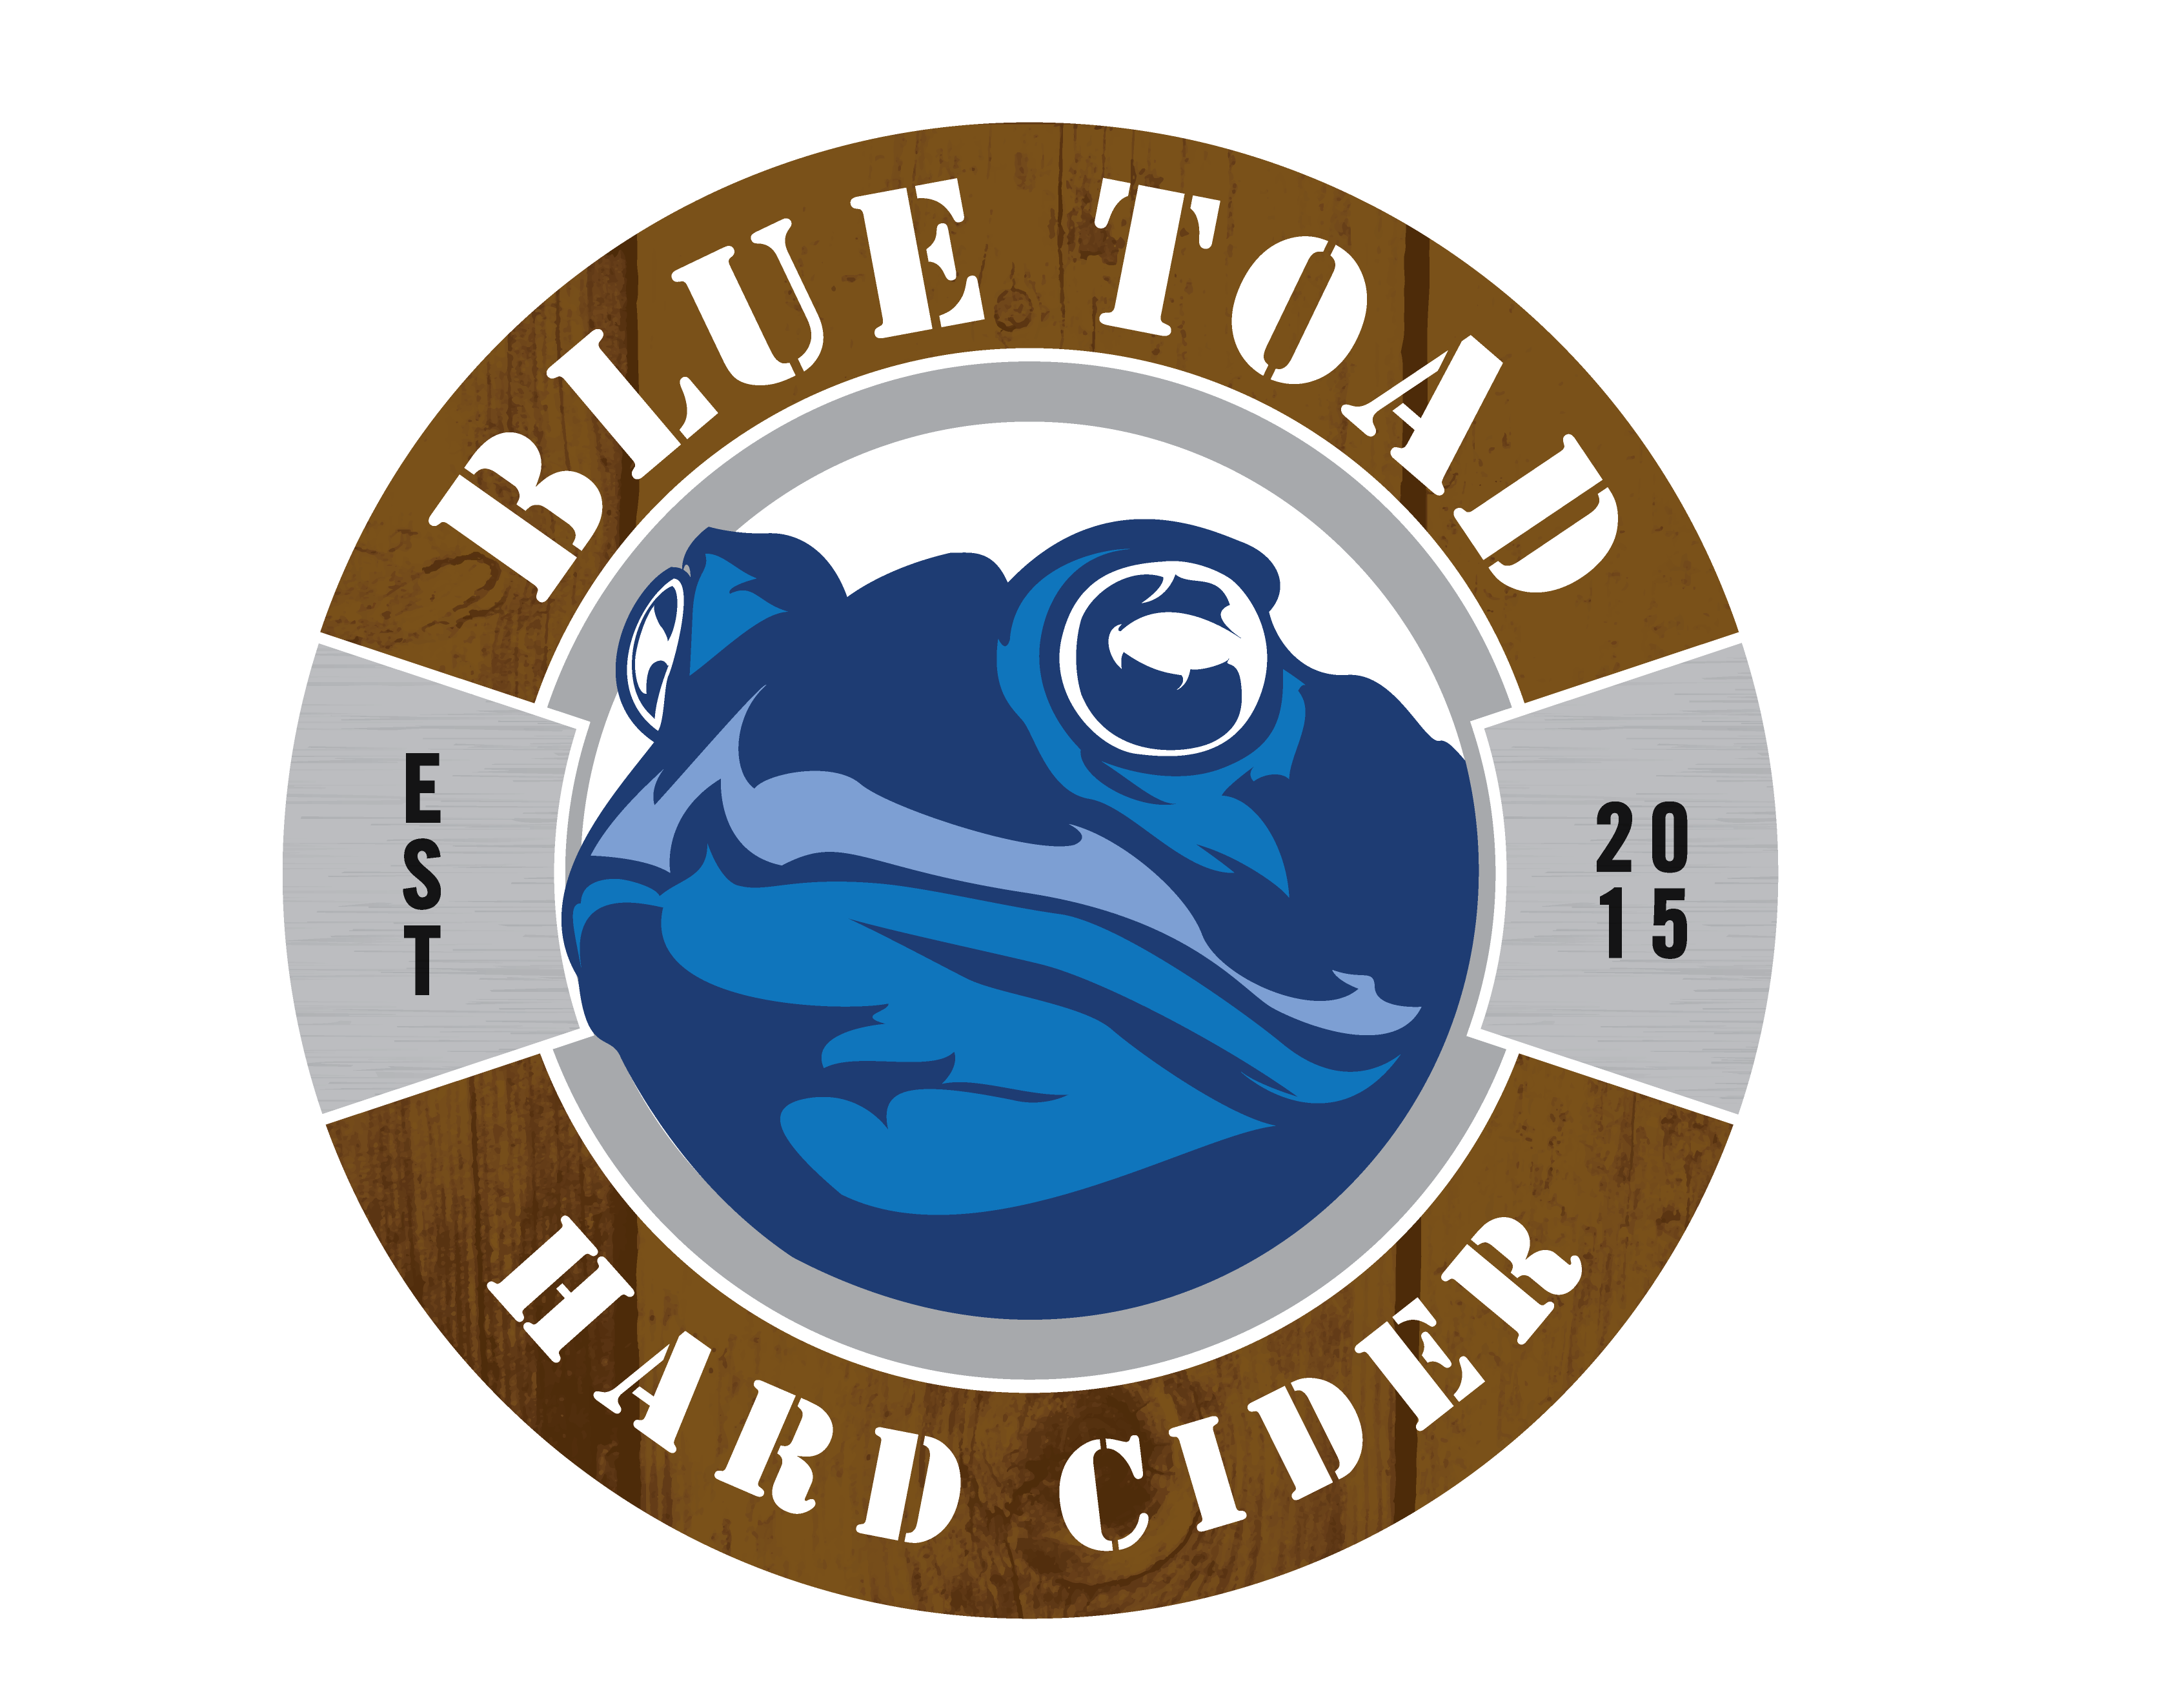 Blue Toad Cider